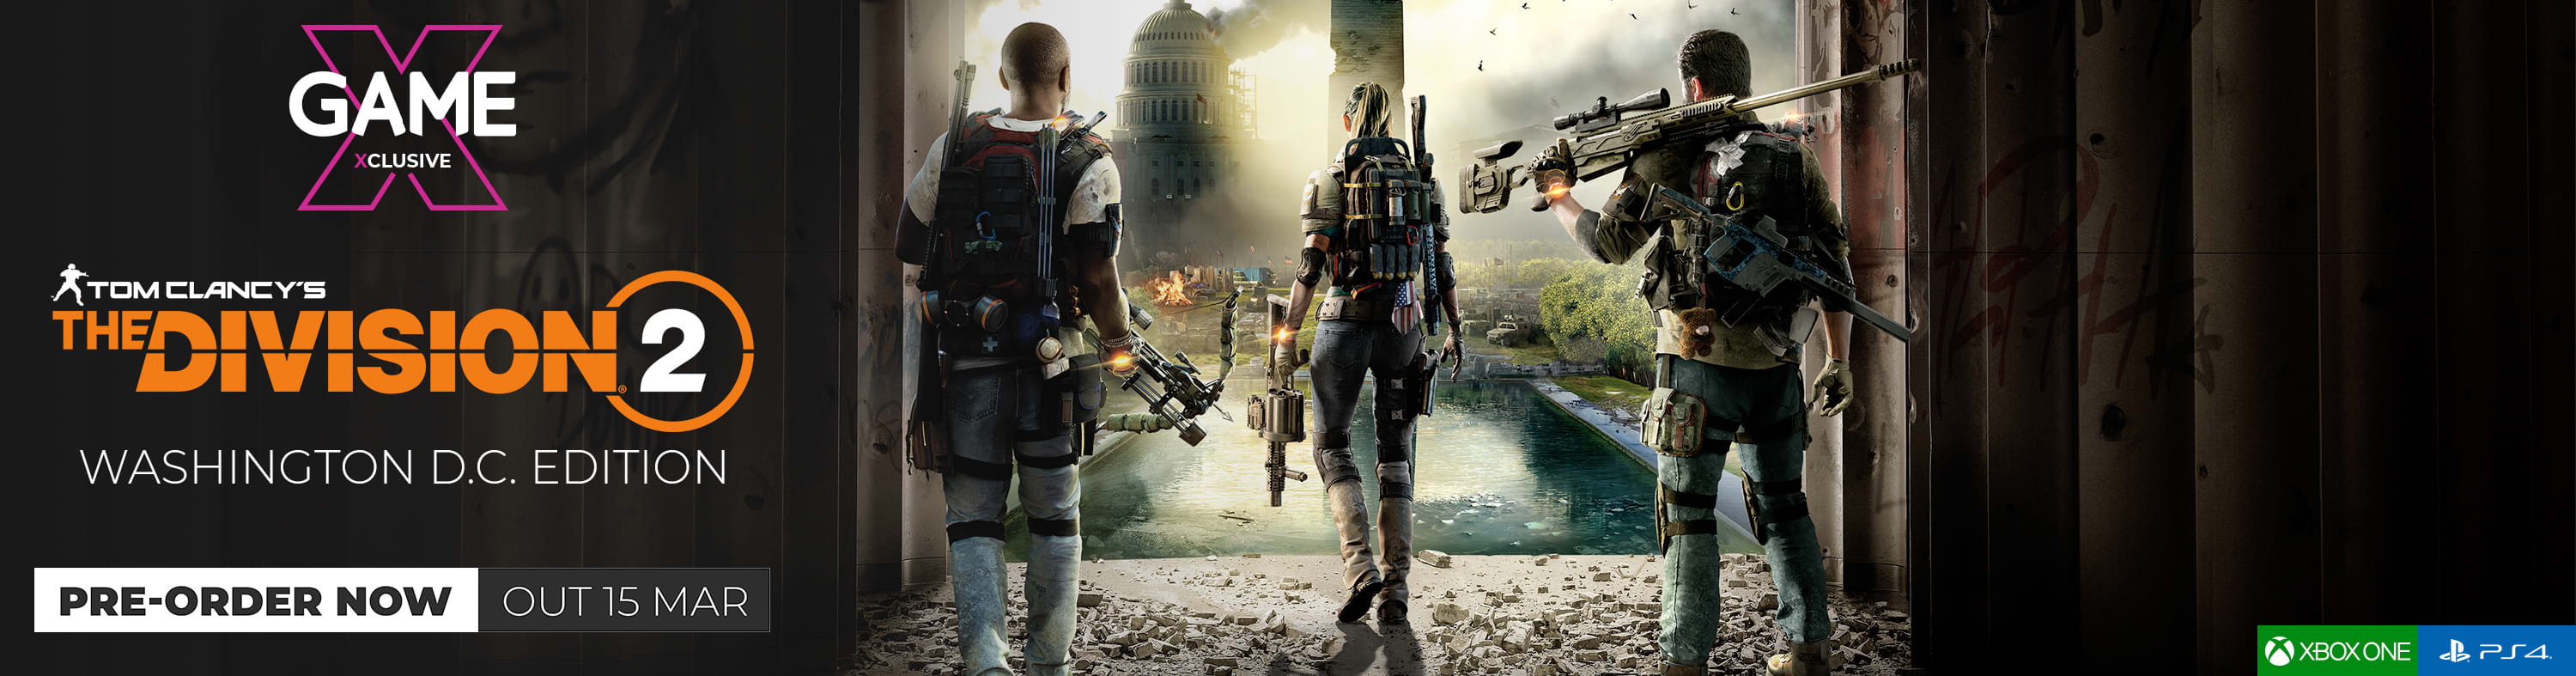 Tom Clancy's The Division 2 - Washington D.C Edition